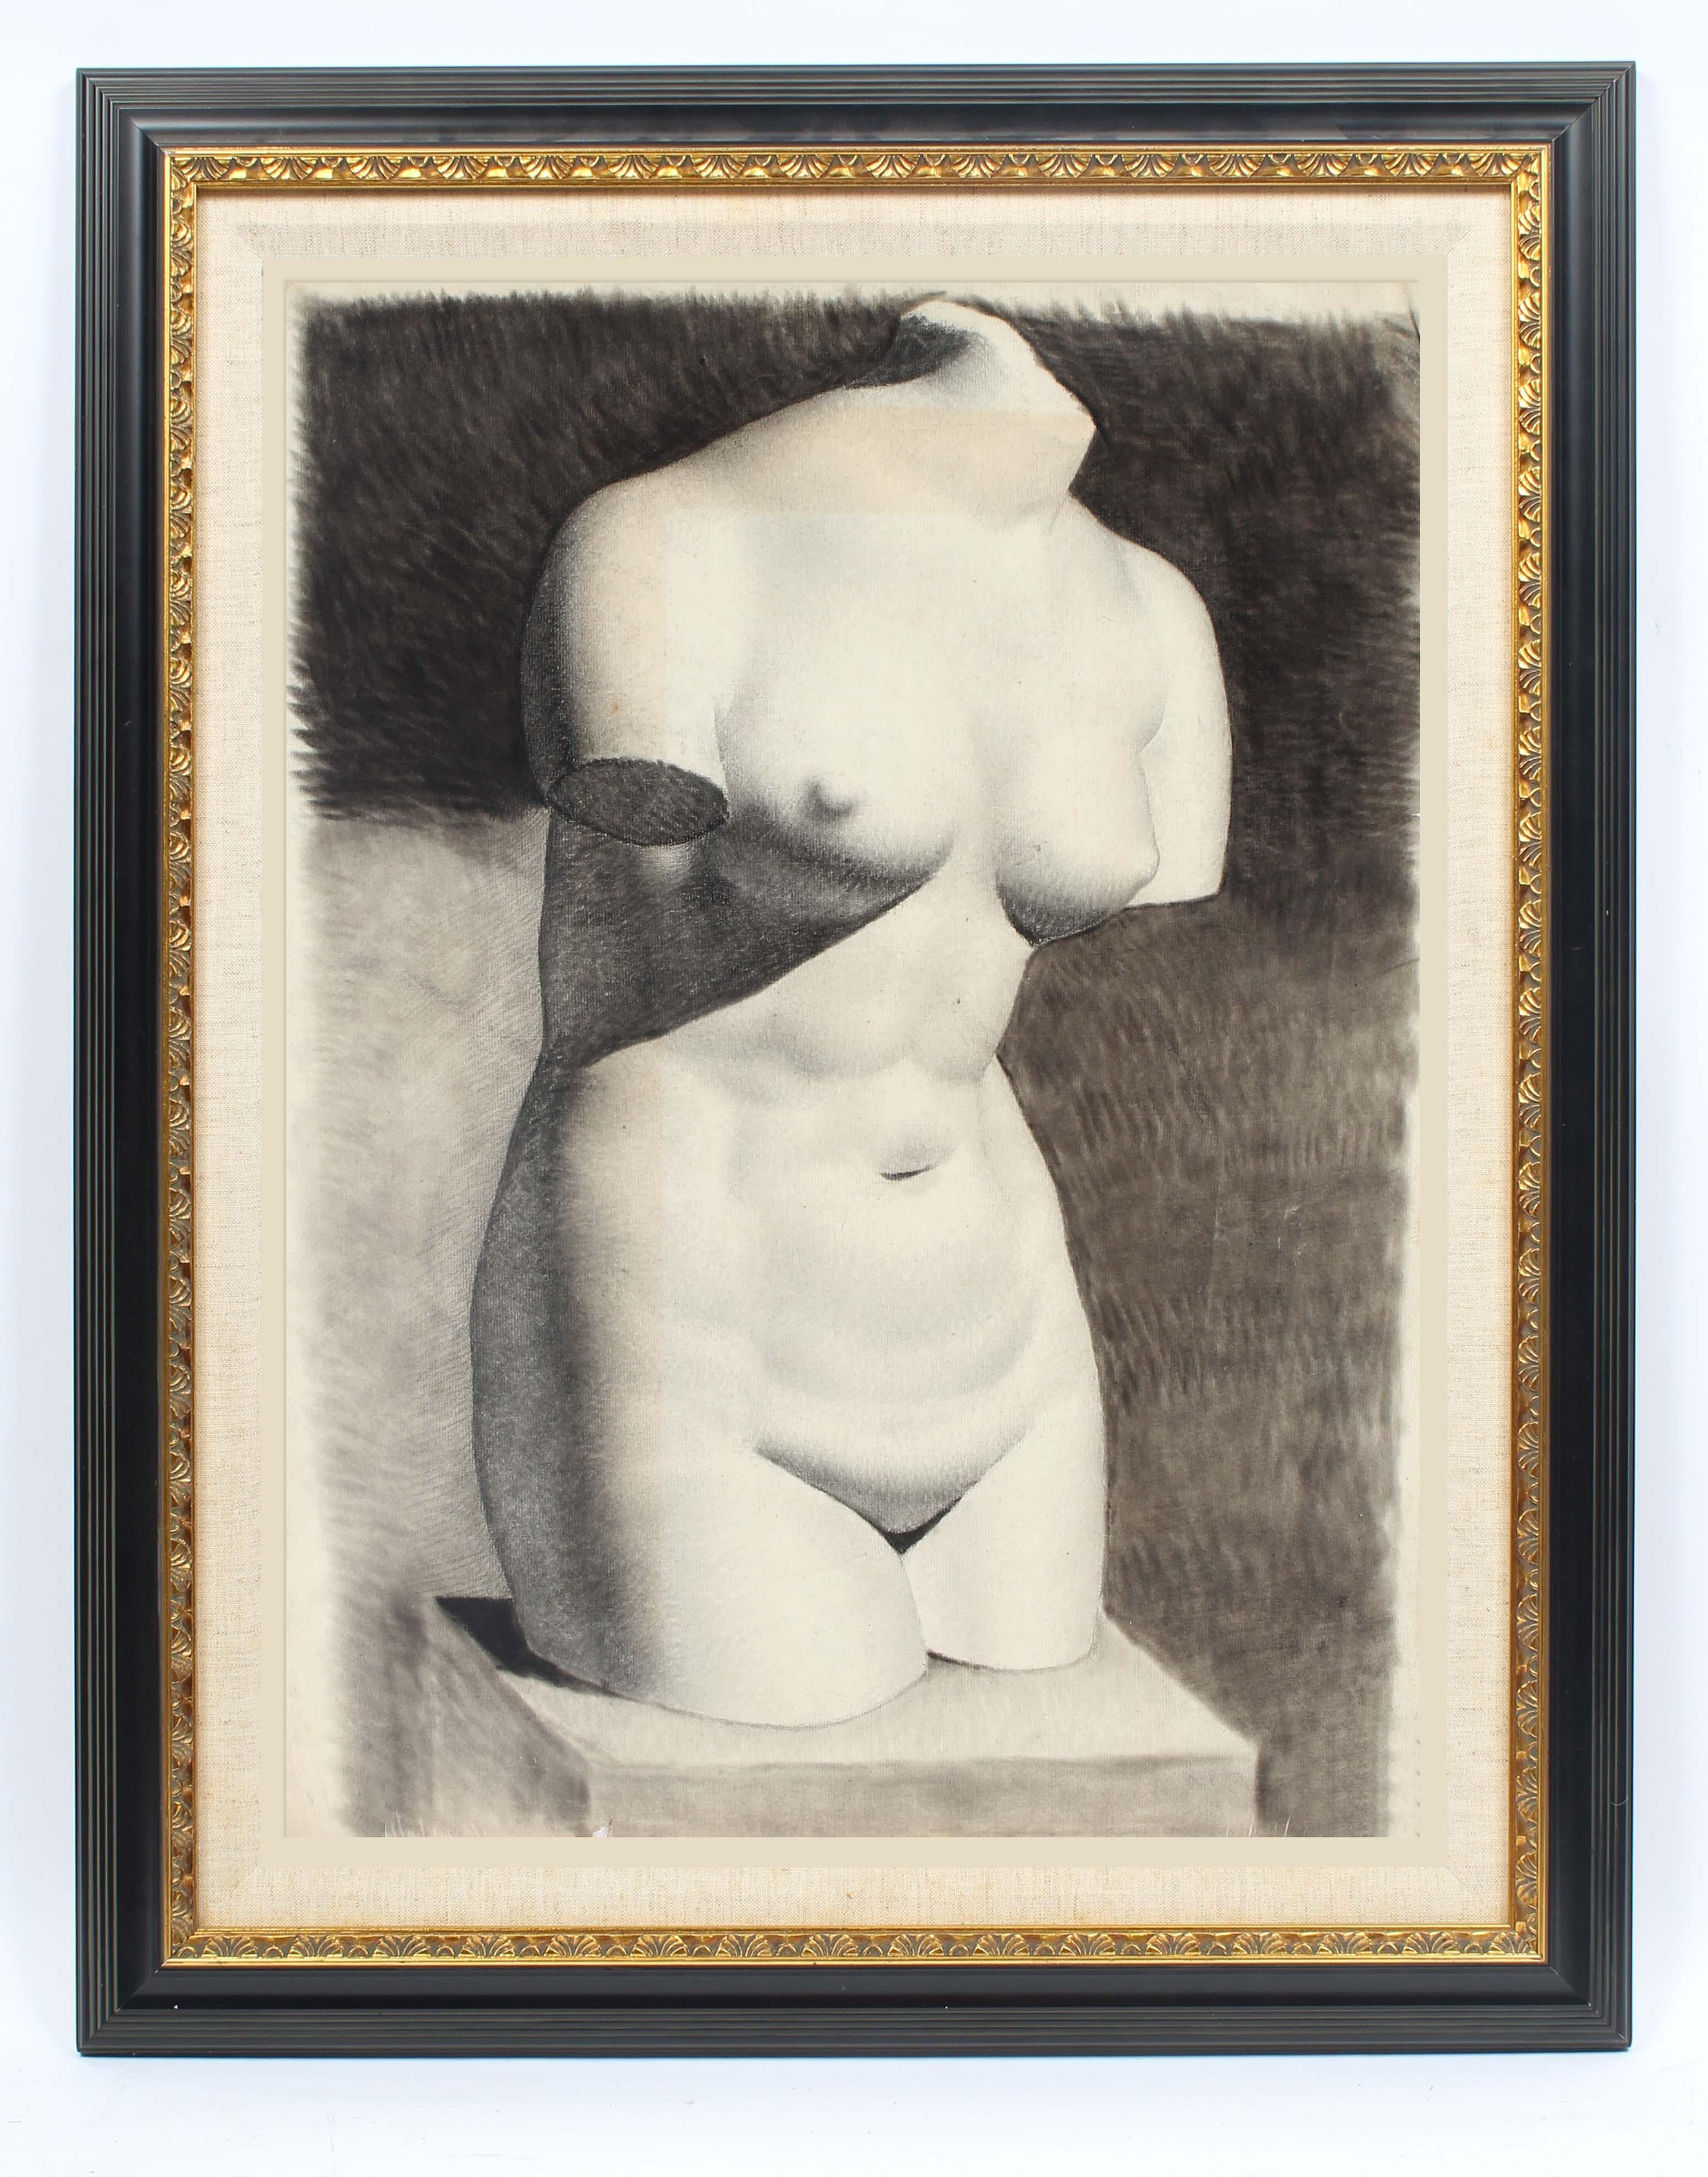 American realist charcoal drawing bust nude woman sculpture framed black & White